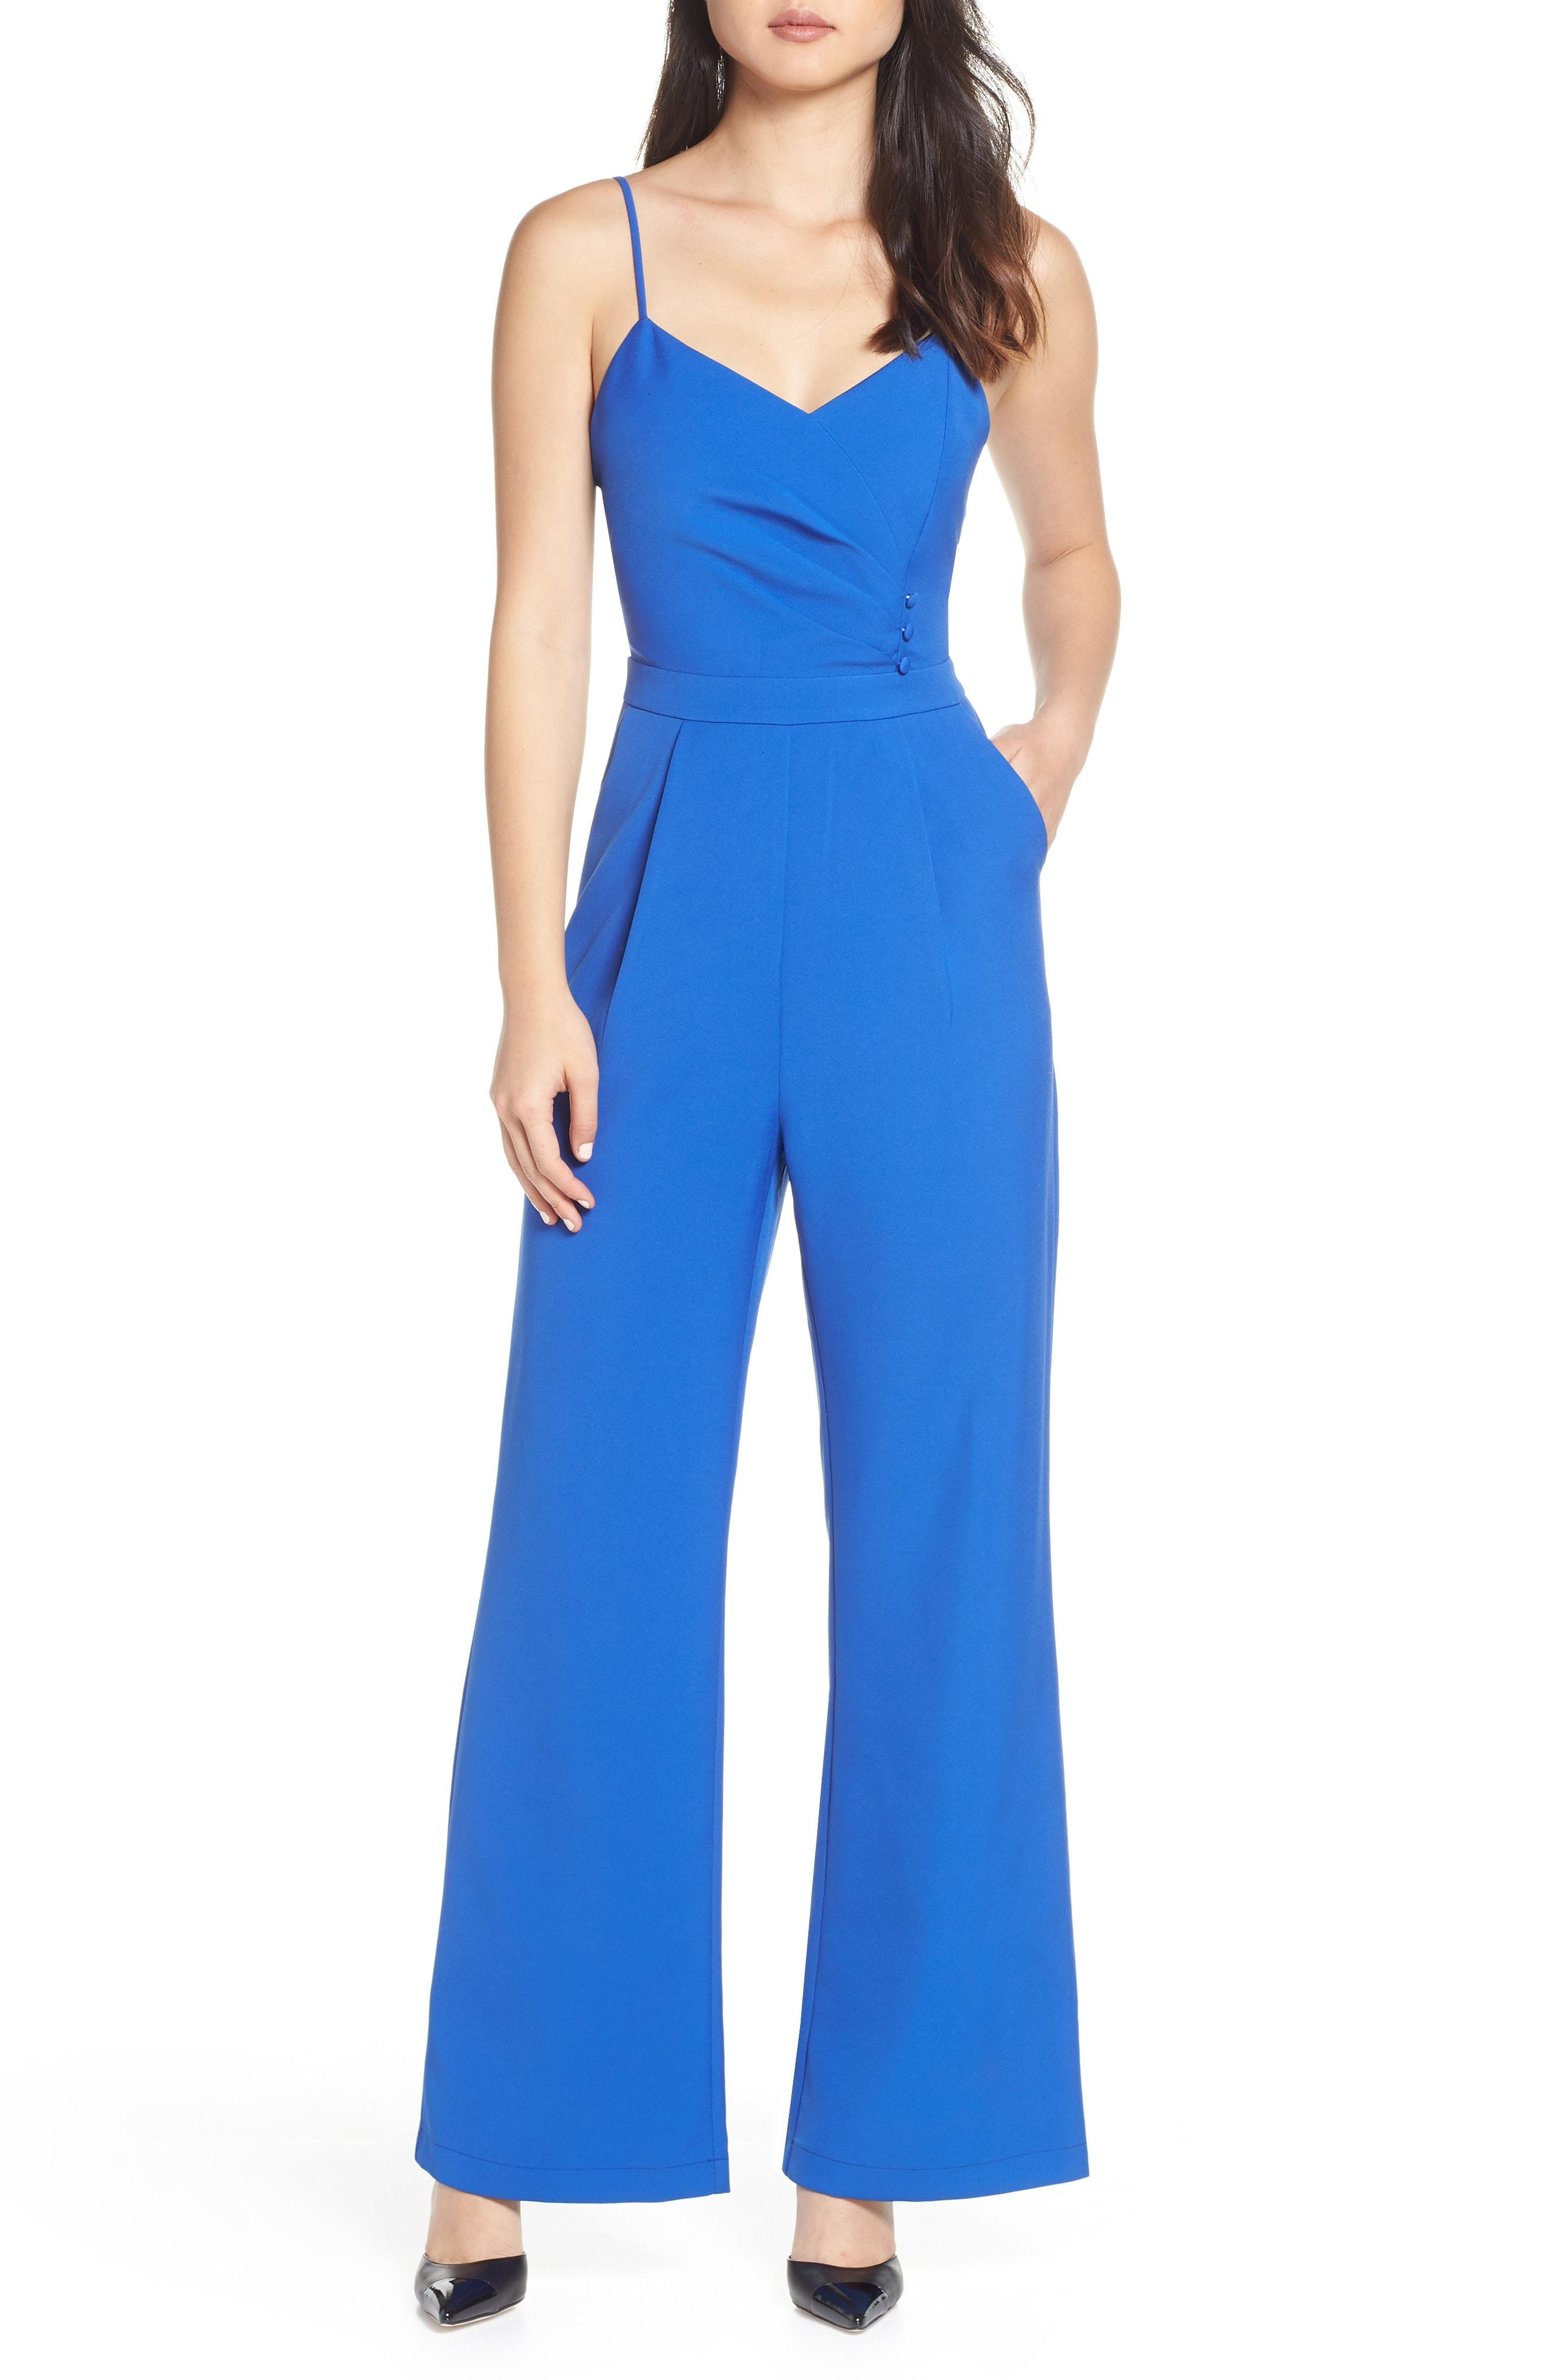 94f55f5b970 Lyst - Adelyn Rae Tierney Sleeveless Pleated Jumpsuit in Blue